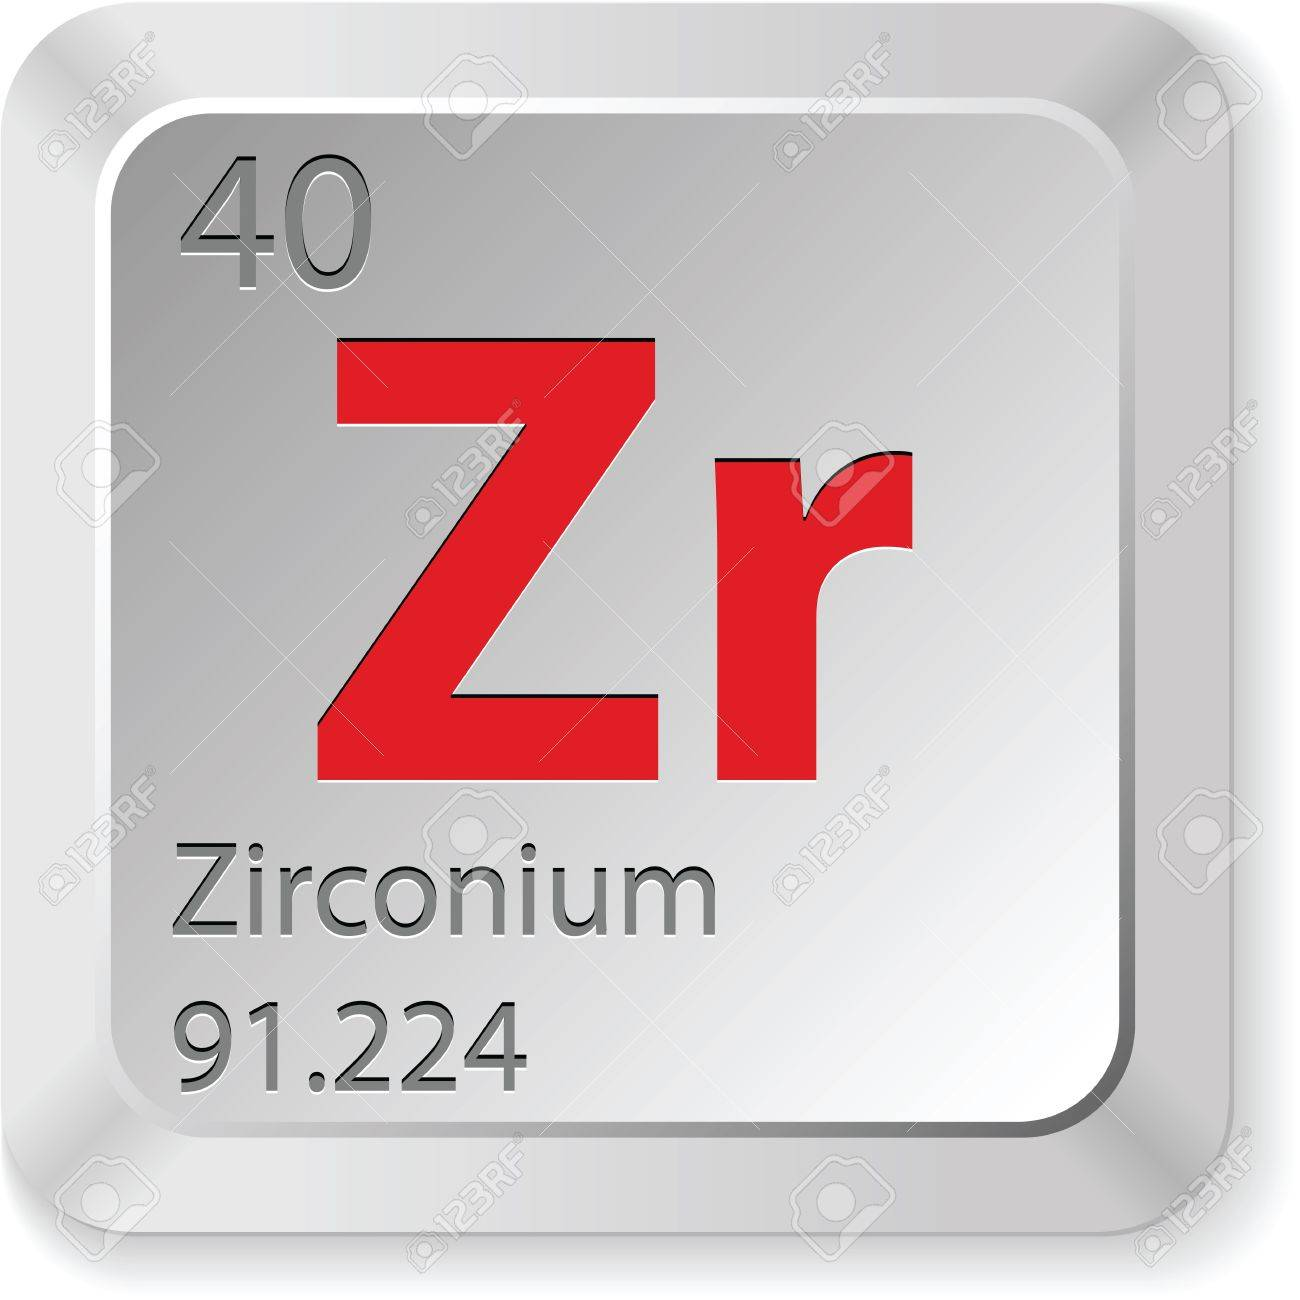 Zirconium Element Royalty Free Cliparts, Vectors, And Stock ...